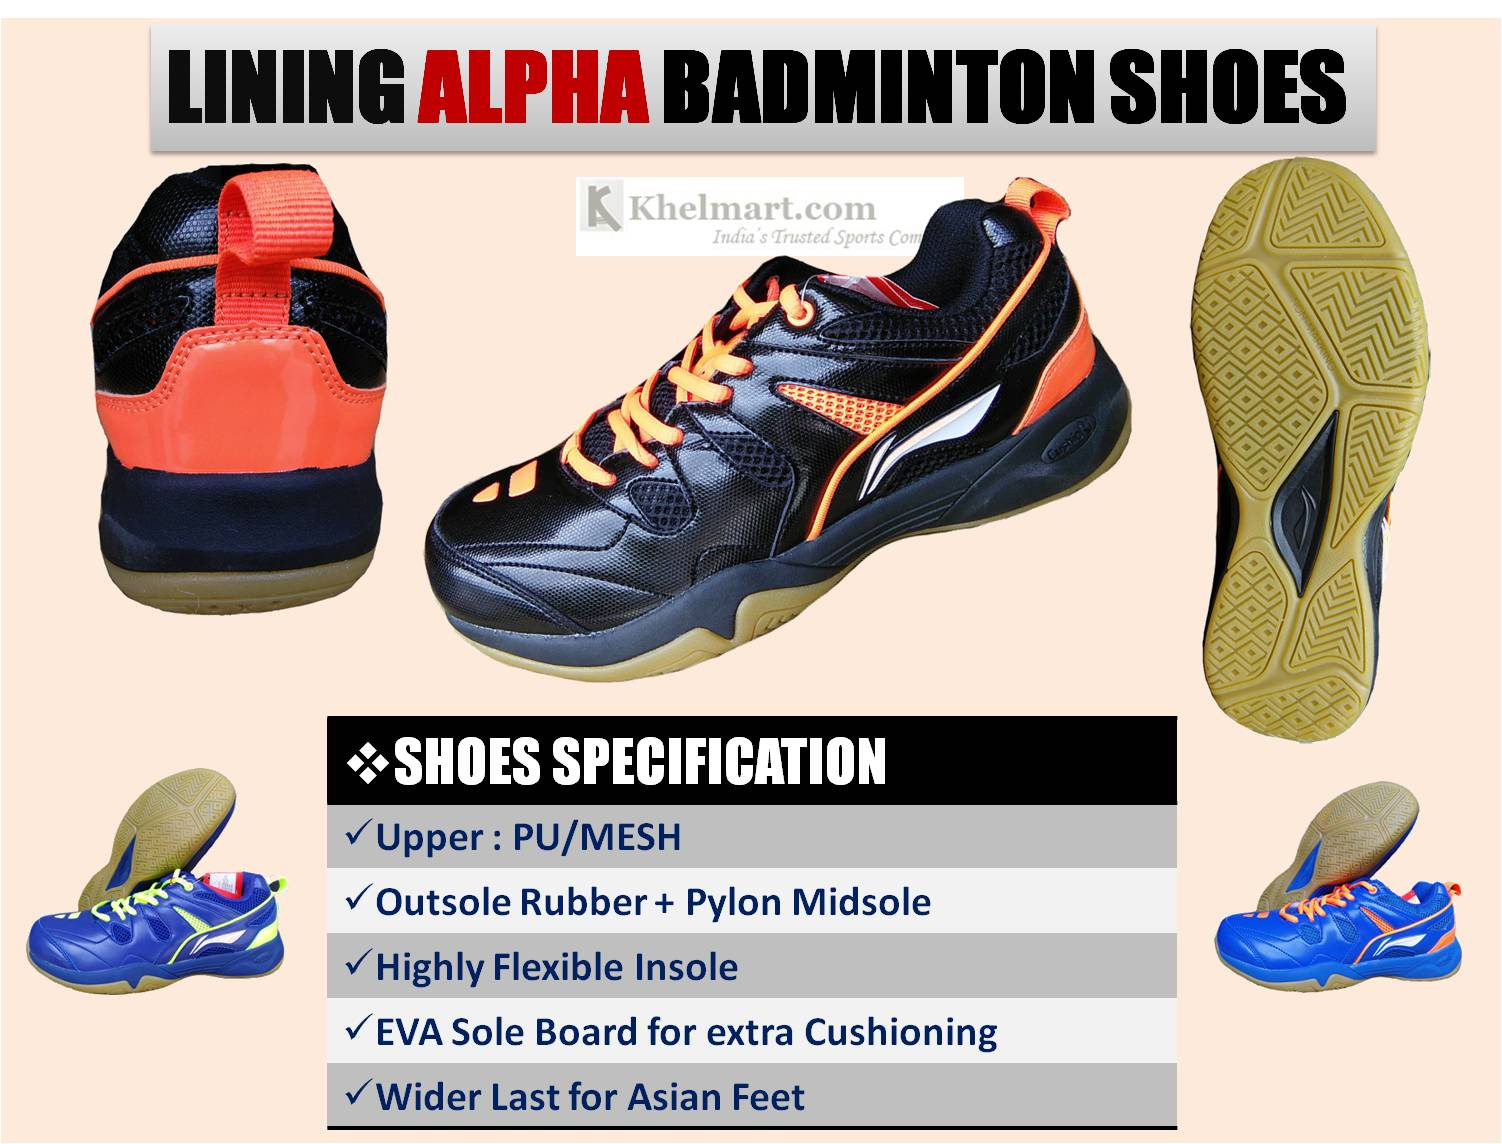 LINING_ALPHA_BADMINTON_SHOES